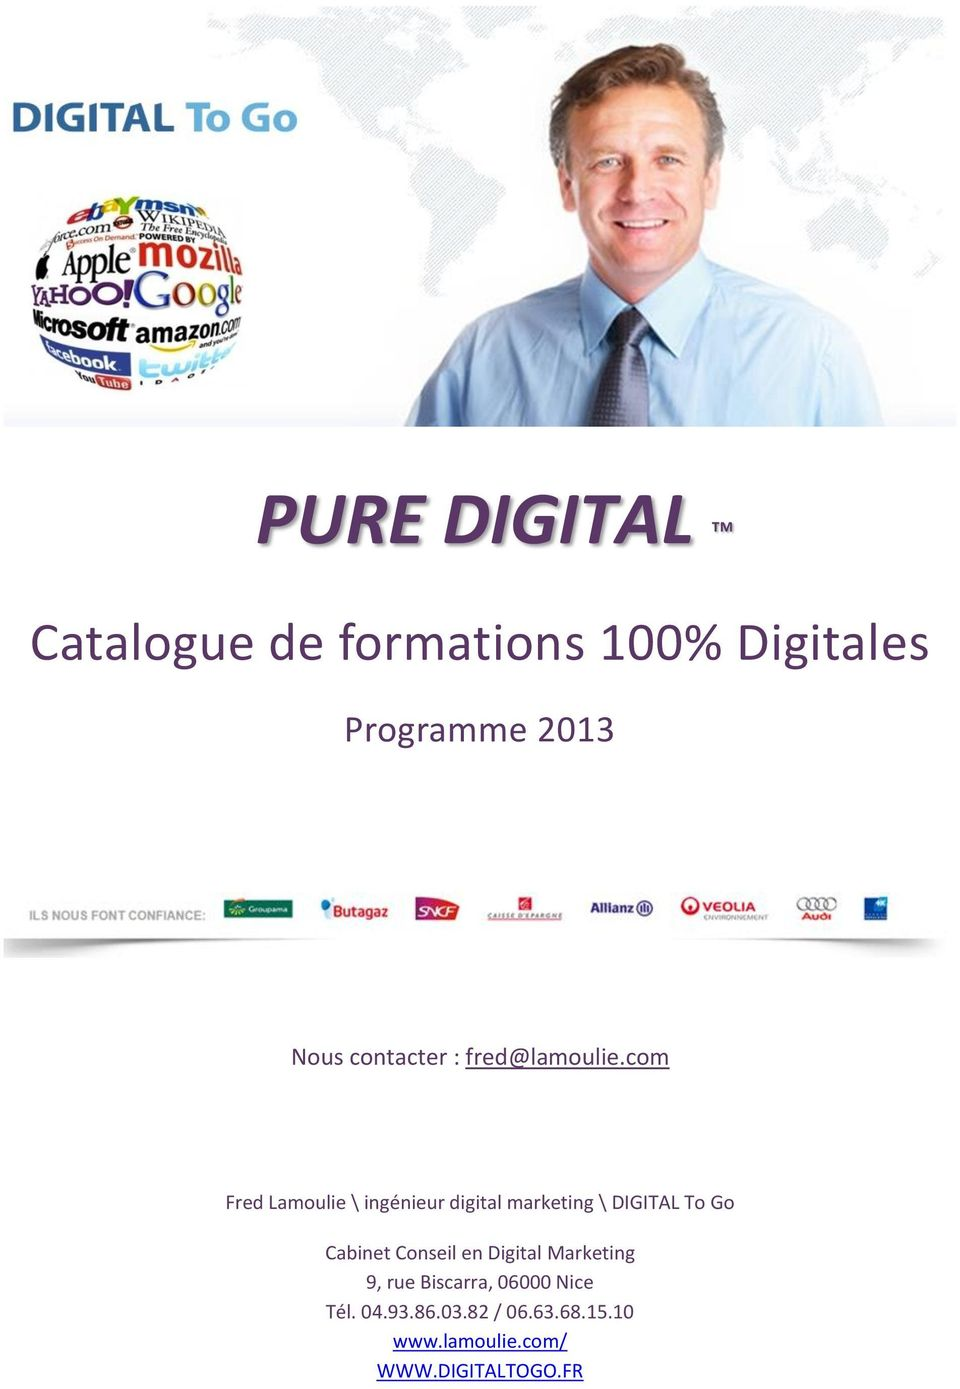 cm Fred Lamulie \ ingénieur digital marketing \ DIGITAL T G Cabinet